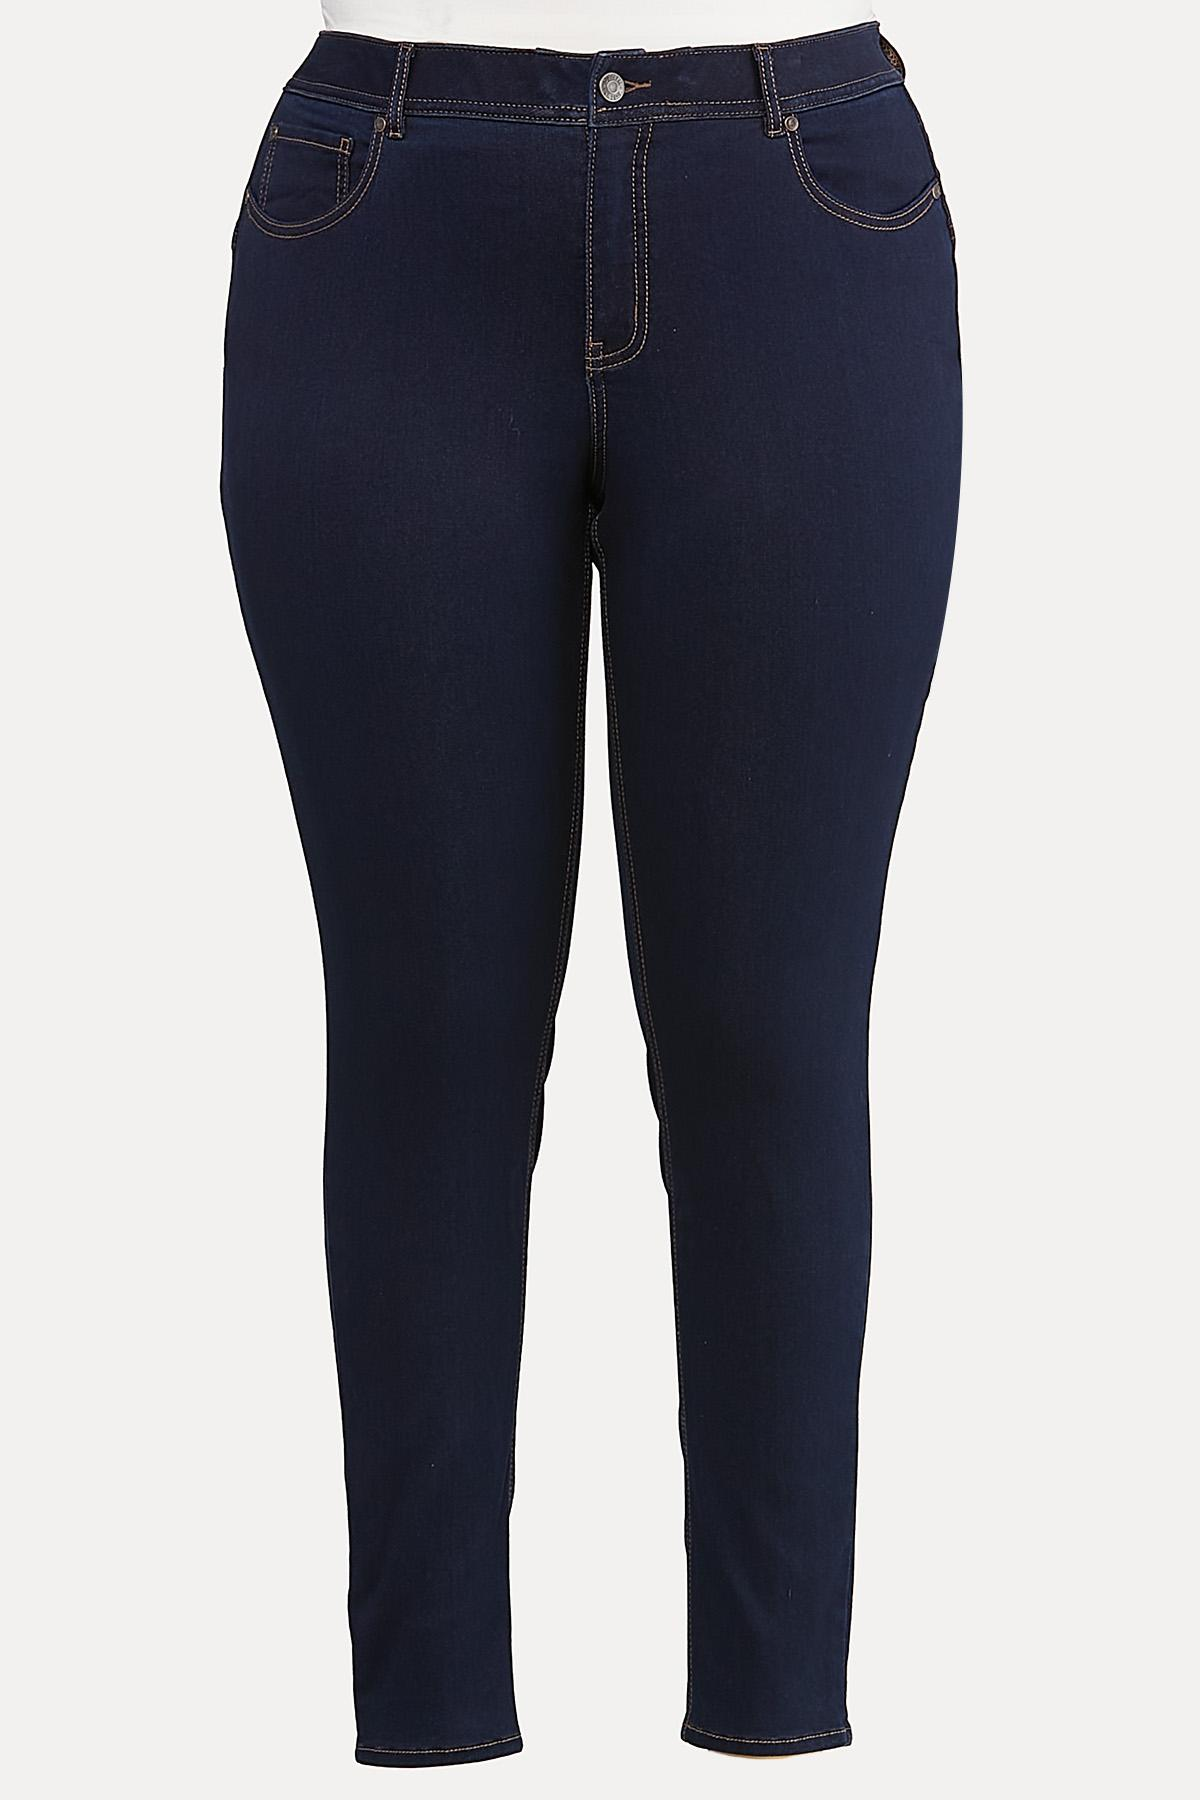 Plus Size The Perfect Jeggings